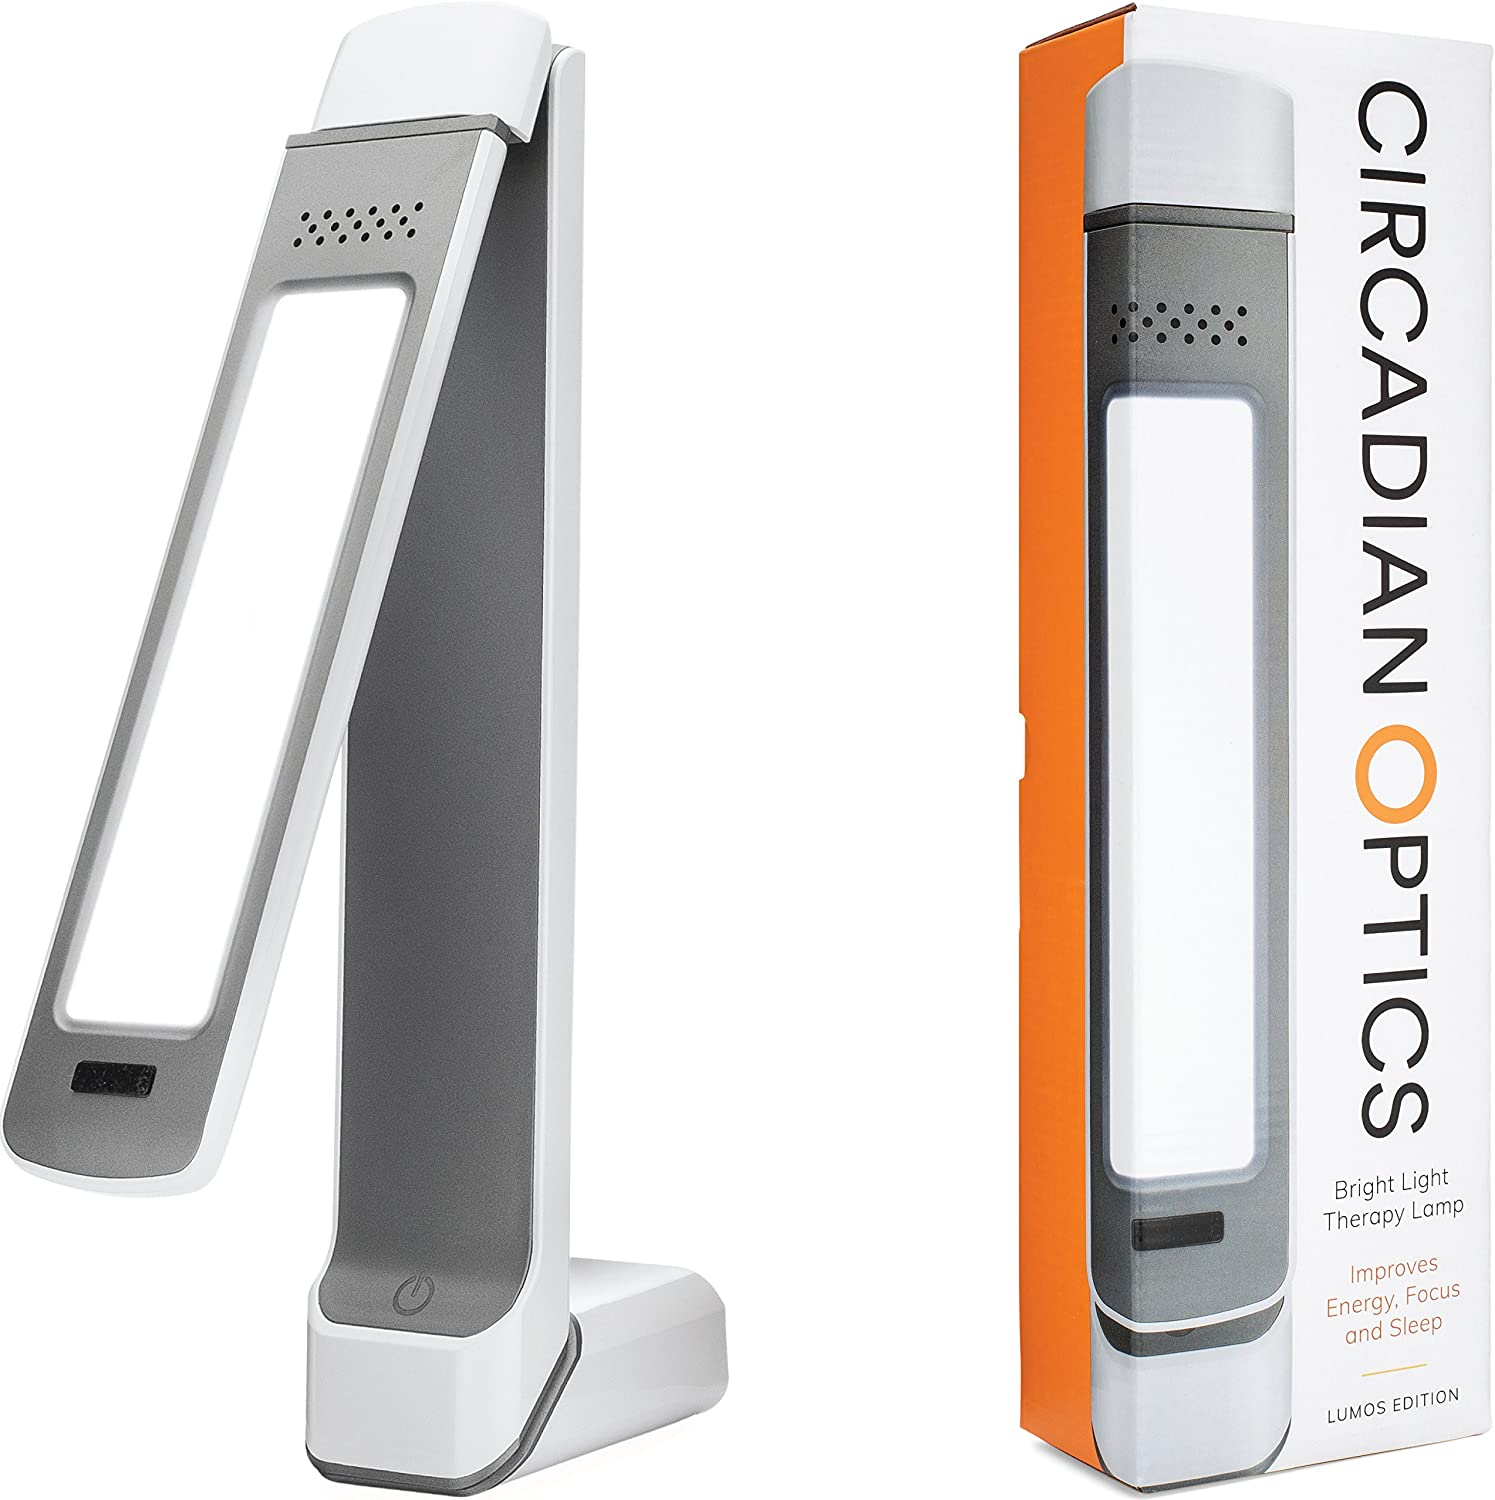 Circadian Optics Lumos 2.0 Light Therapy Lamp | As Seen On Shark Tank